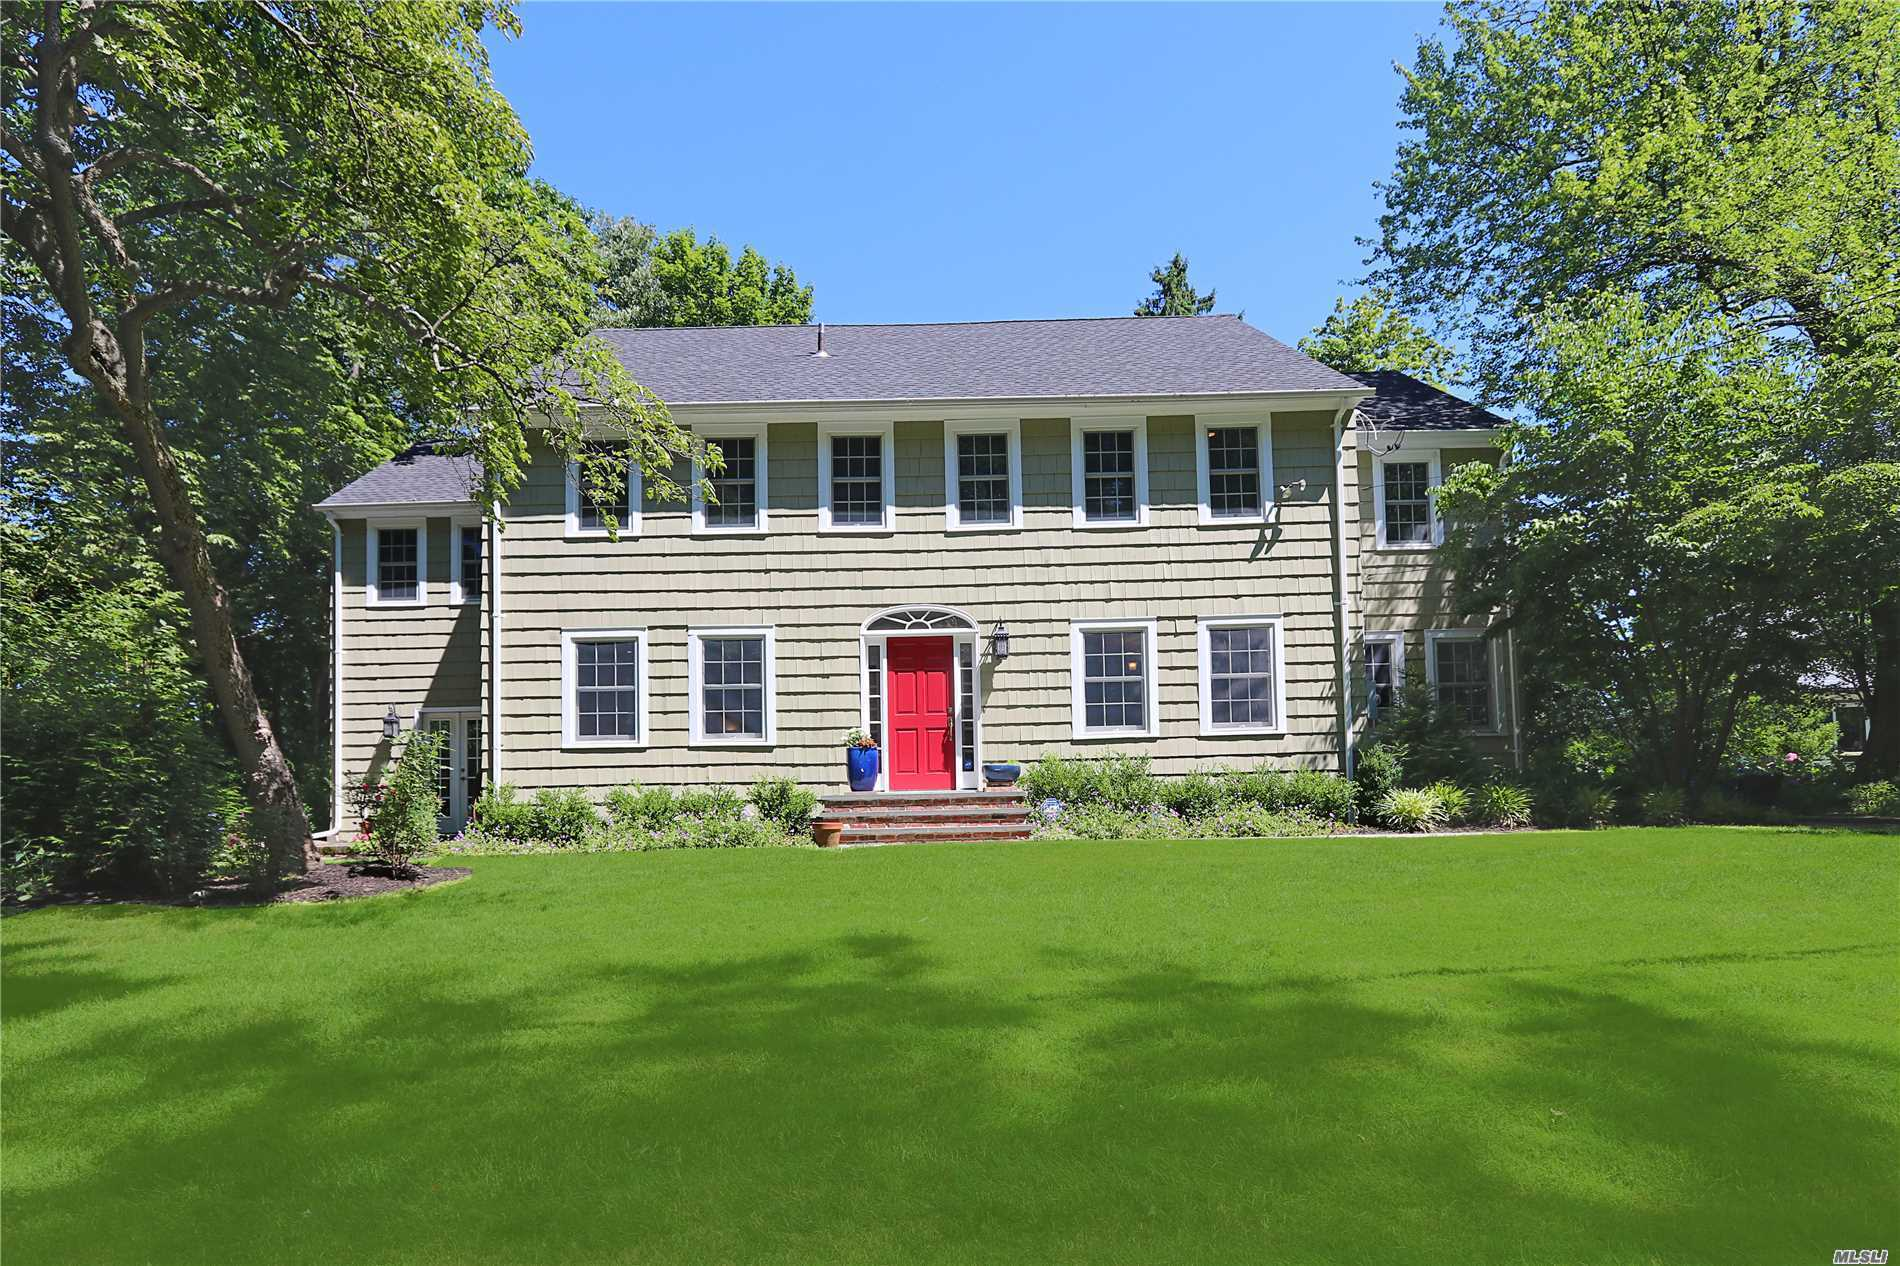 Picturesque Country Colonial Set In Private Setting, Newly Renovated, Gourmet Chef's Kitchen, Outstanding Great Room, Open Layout. Prestigious Roslyn Schools. Must See To Appreciate!